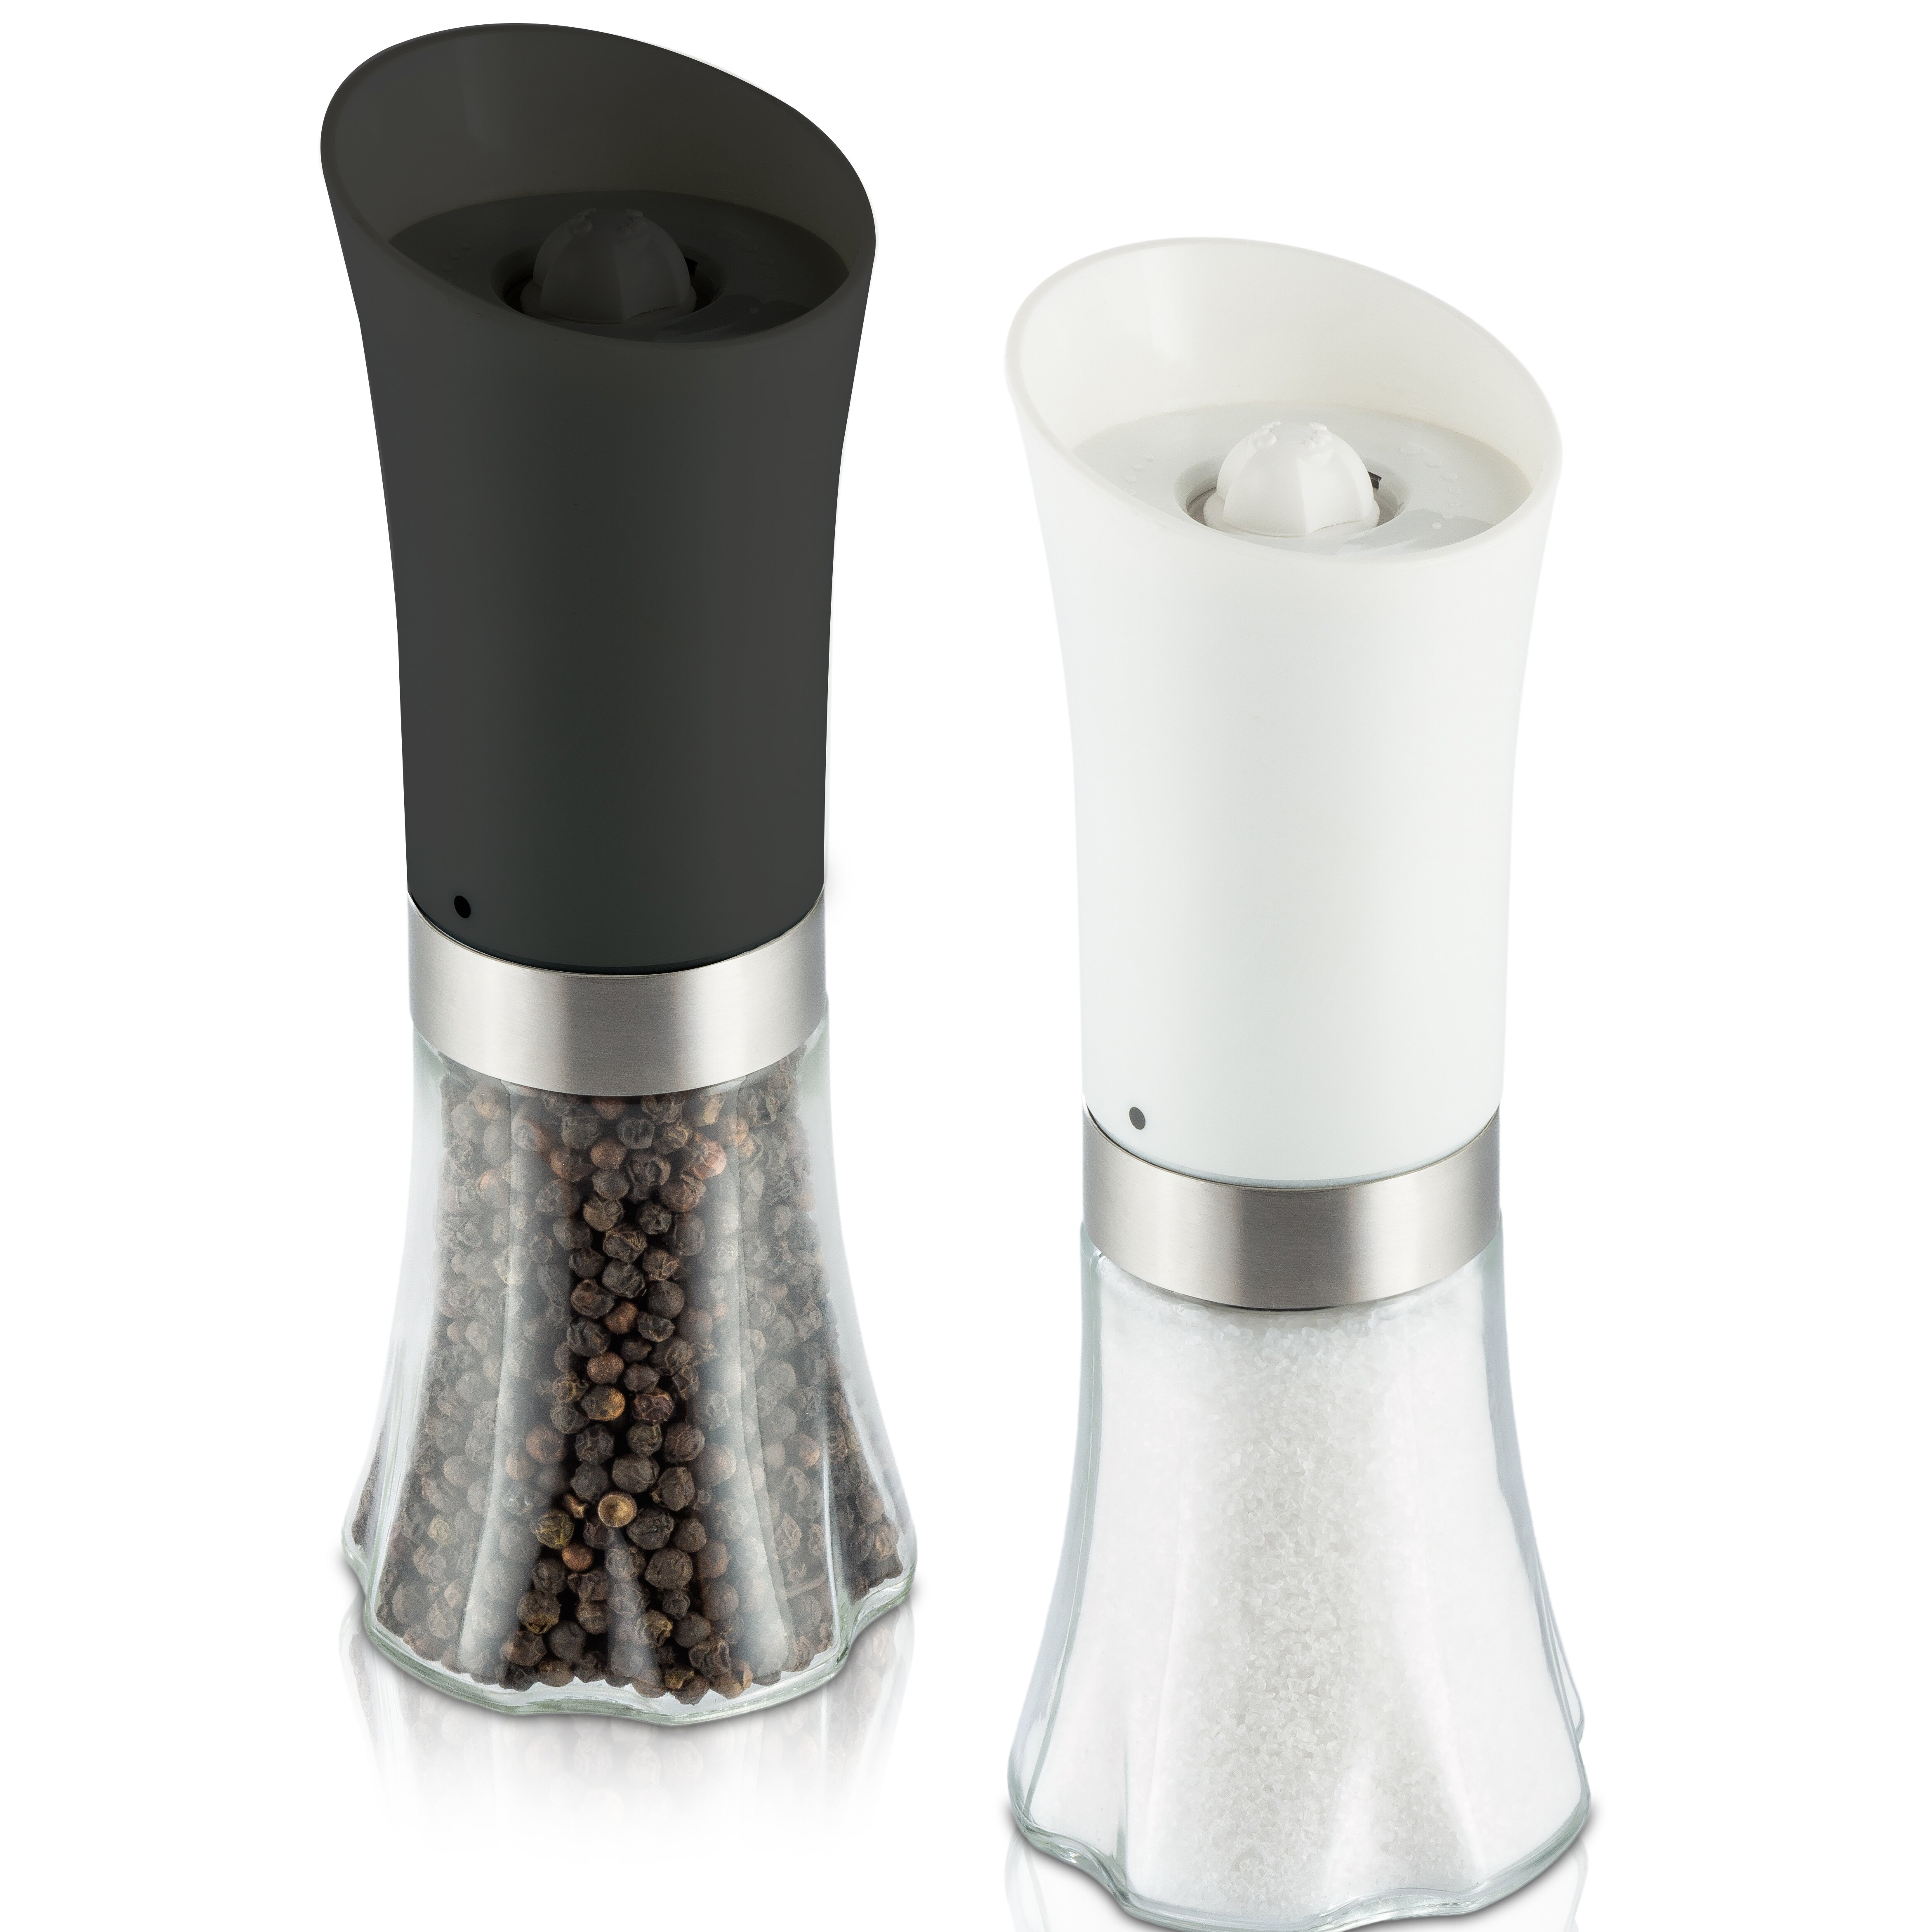 modernhome deluxe salt and pepper mill set wayfair. Black Bedroom Furniture Sets. Home Design Ideas